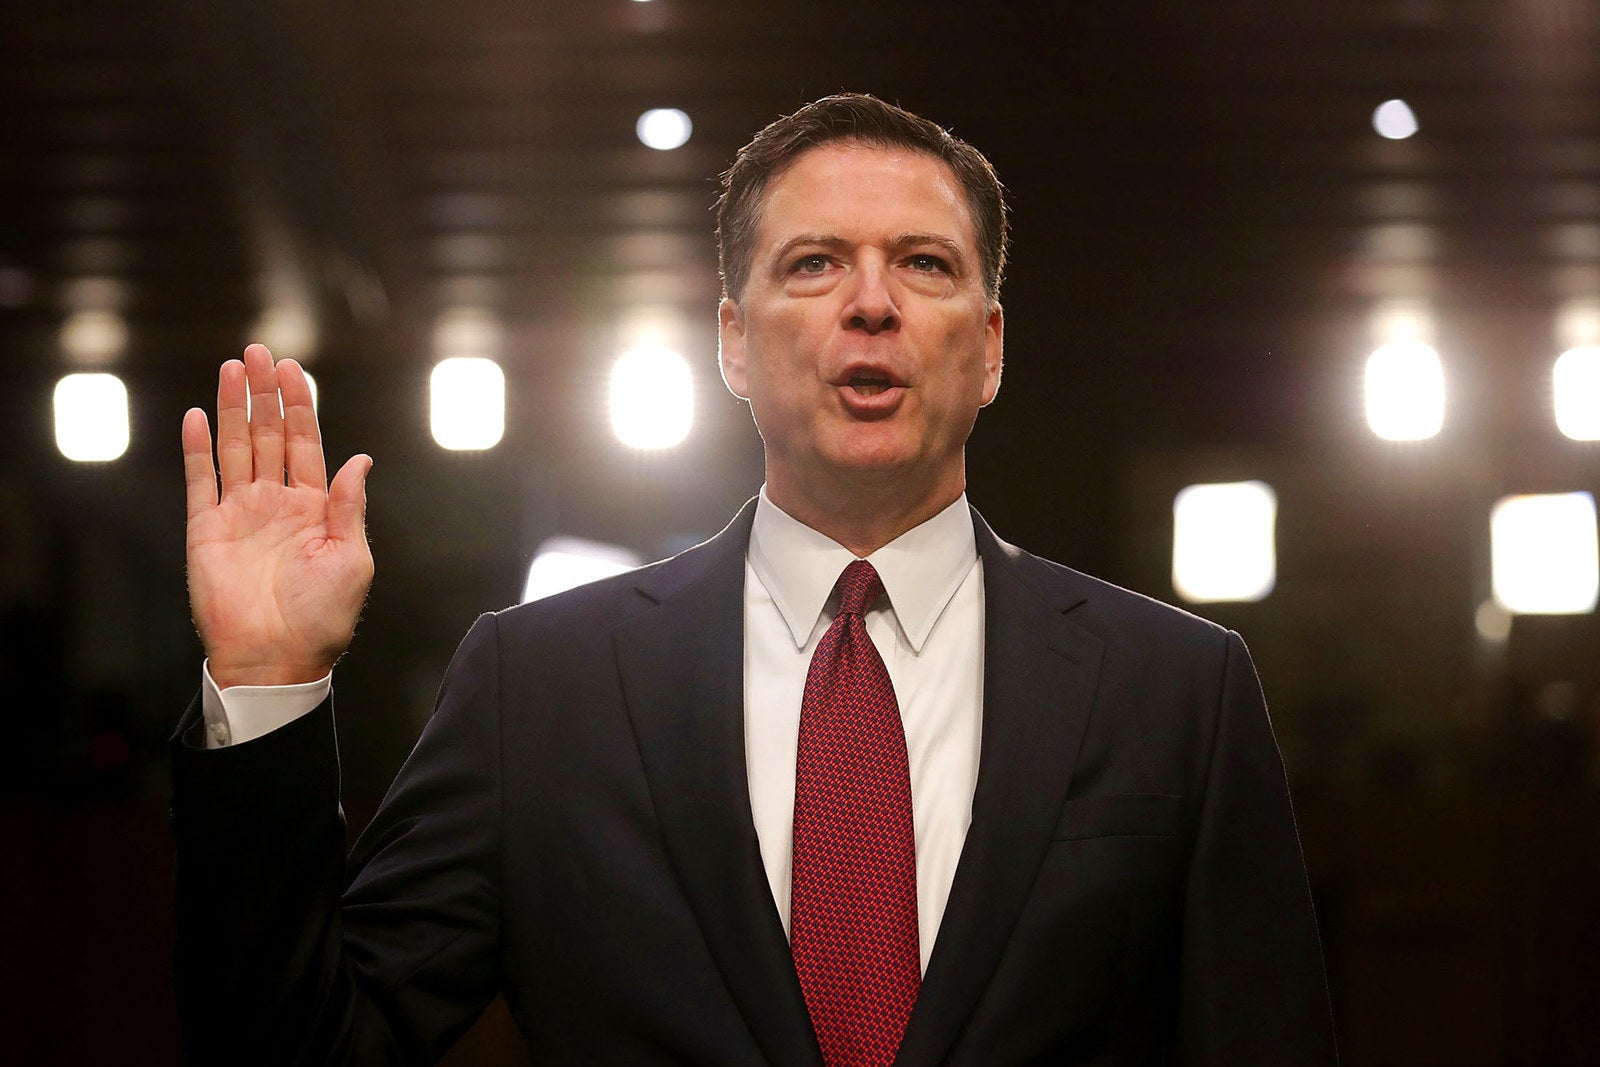 Former FBI director James Comey is sworn in on June 8 while testifying before the Senate Intelligence Committee in the Hart Senate Office Building on Capitol Hill. Comey said that President Donald Trump pressured him to drop the FBI's investigation into former national security adviser Michael Flynn and demanded Comey's loyalty during the one-on-one meetings he had with the president.